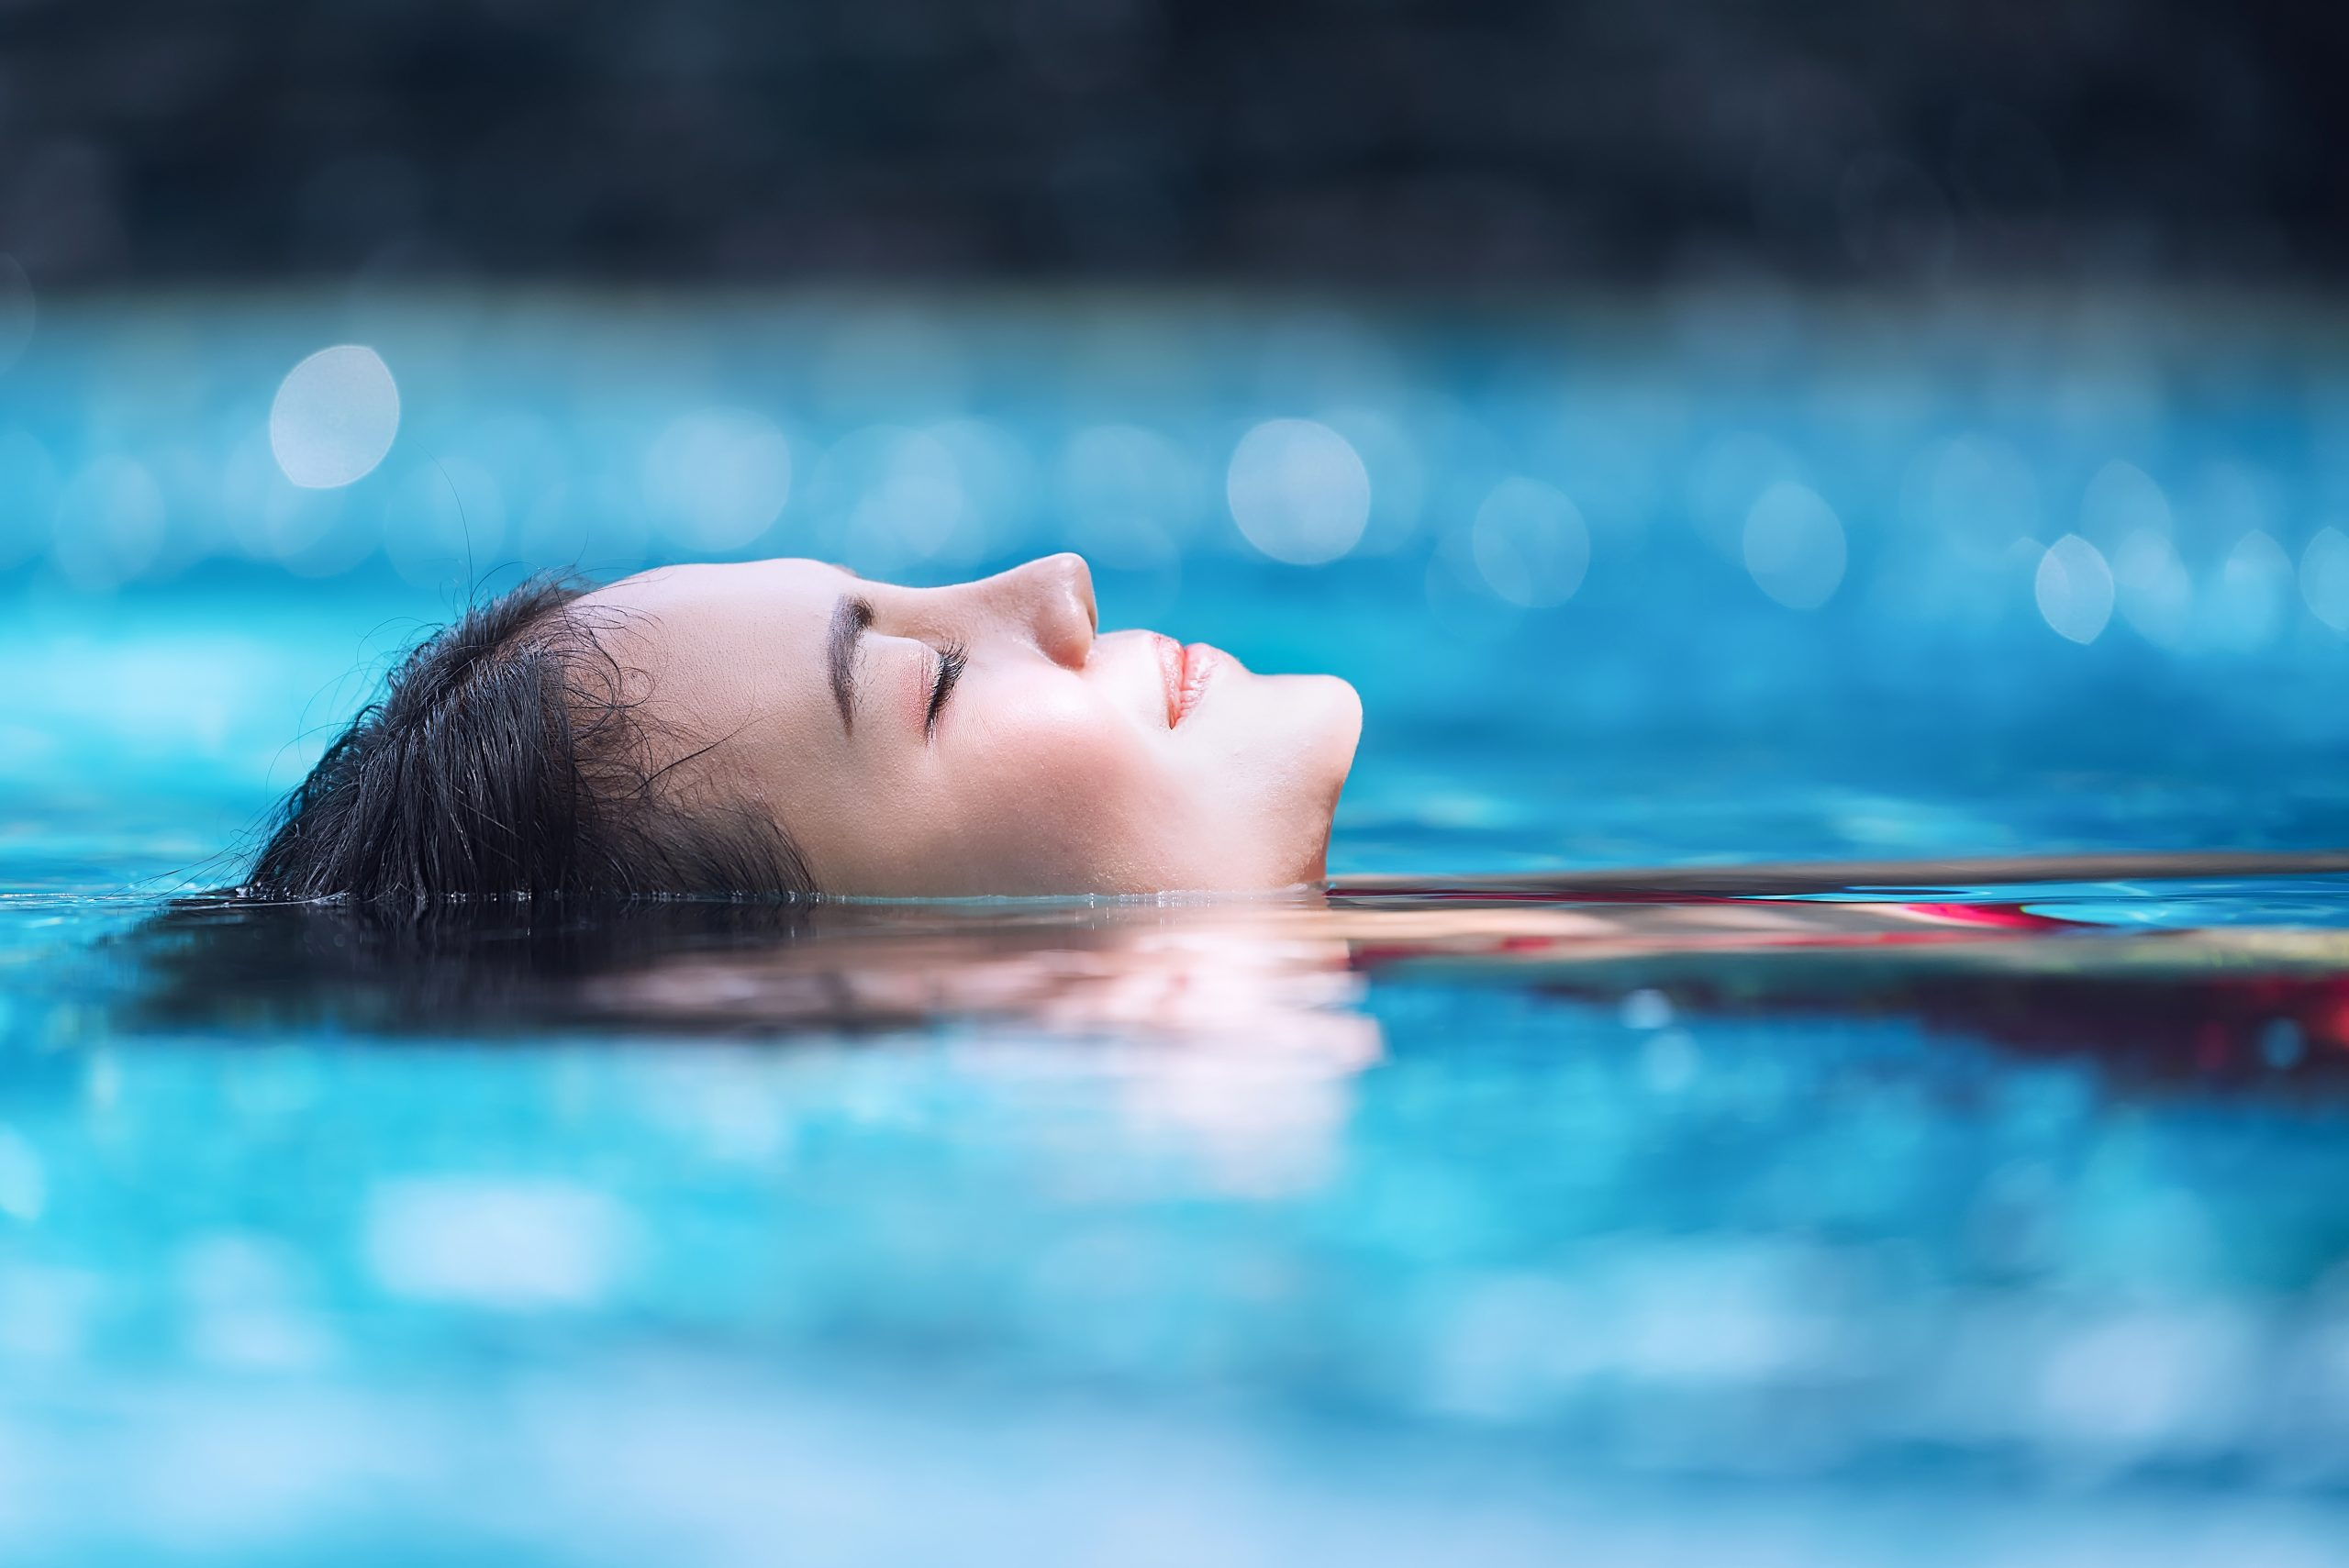 Midshot of young woman, eyes closed, relaxing in pool